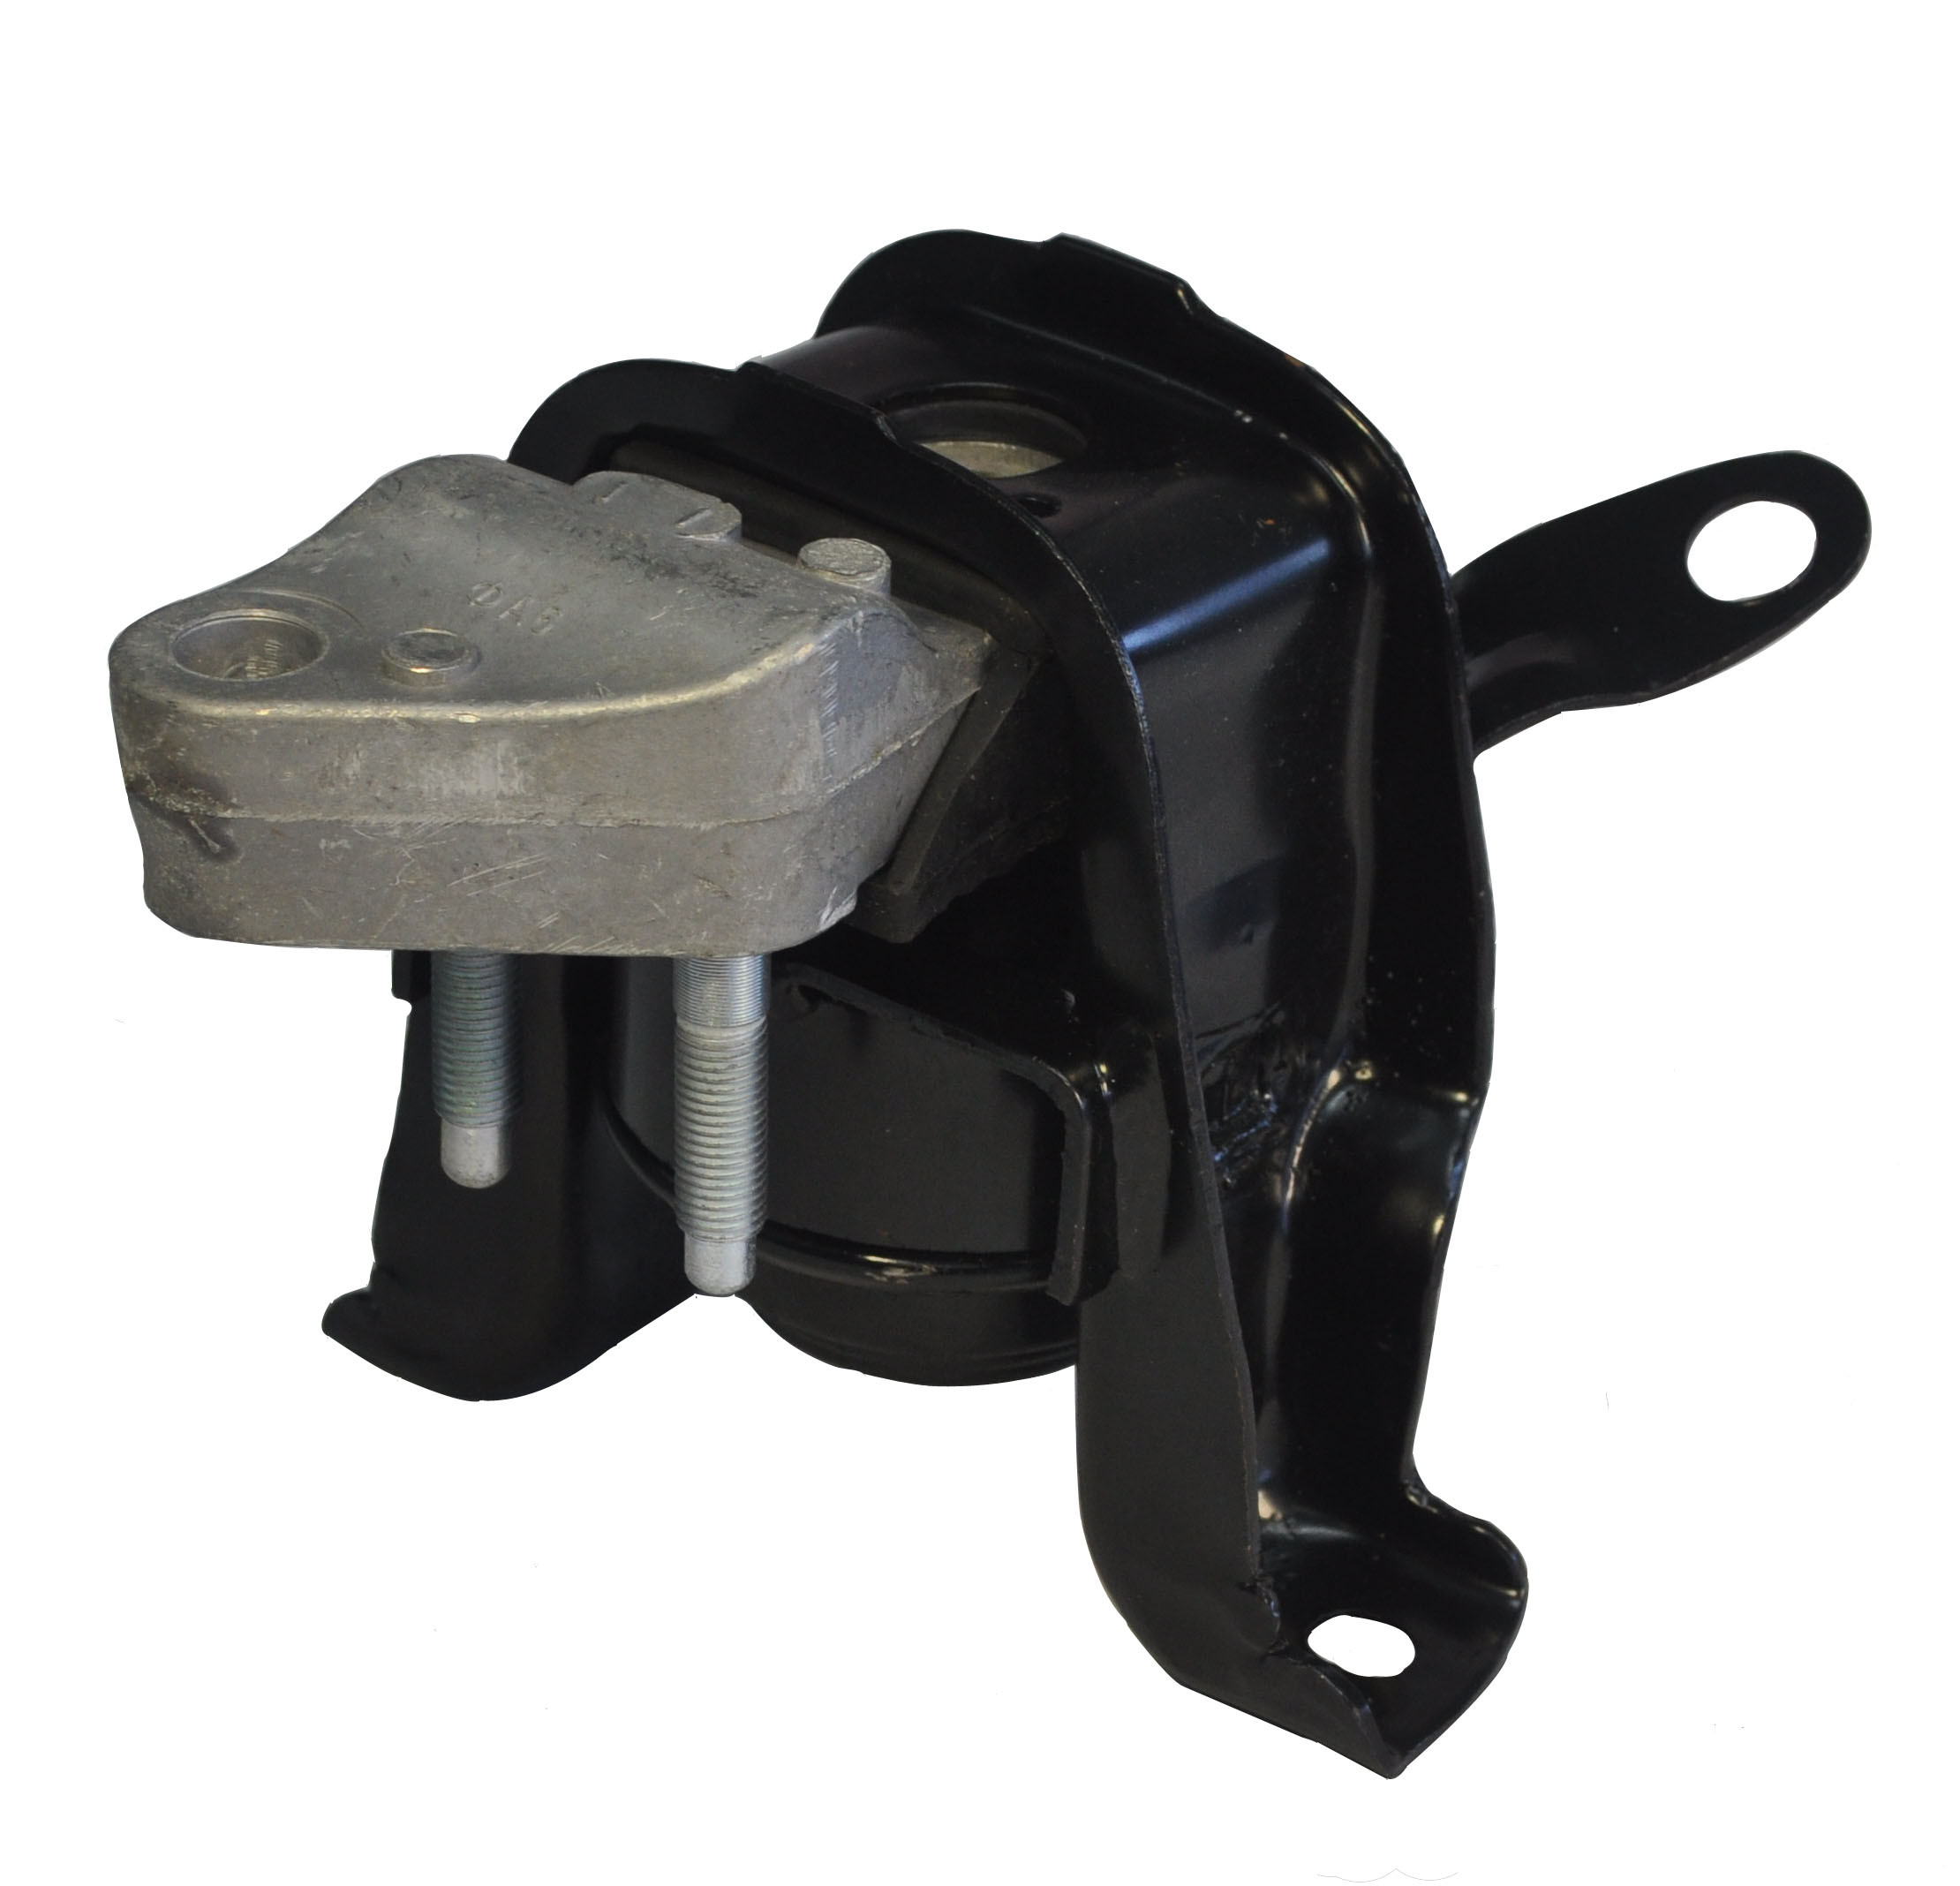 China 12305-0d080 12305-22170 Use for Toyota Altis - China Engine Mount,  Motor Mount